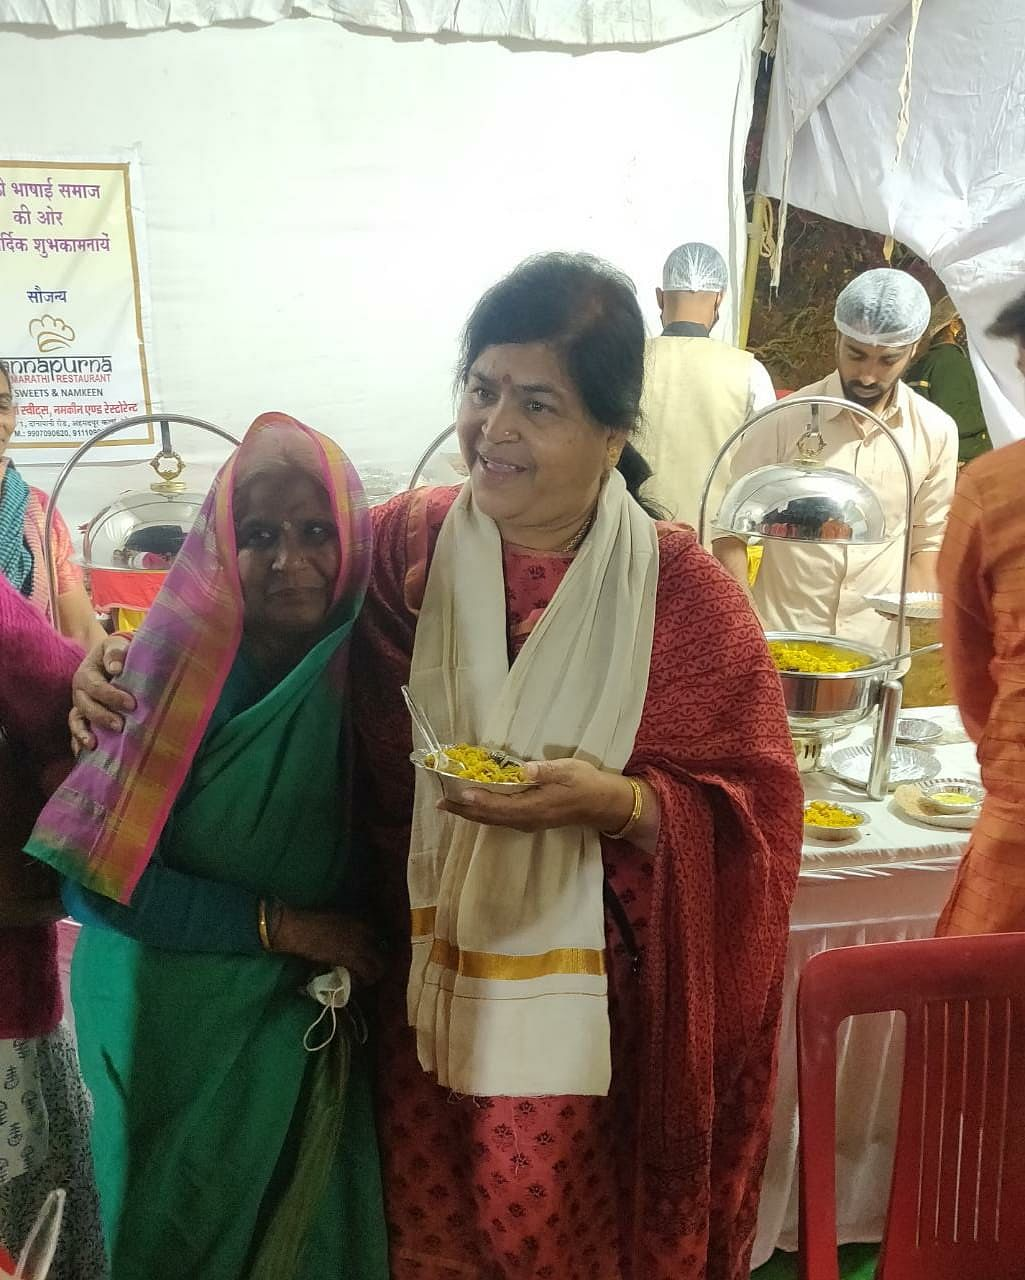 State culture minister Usha Thakur with a woman at food stall